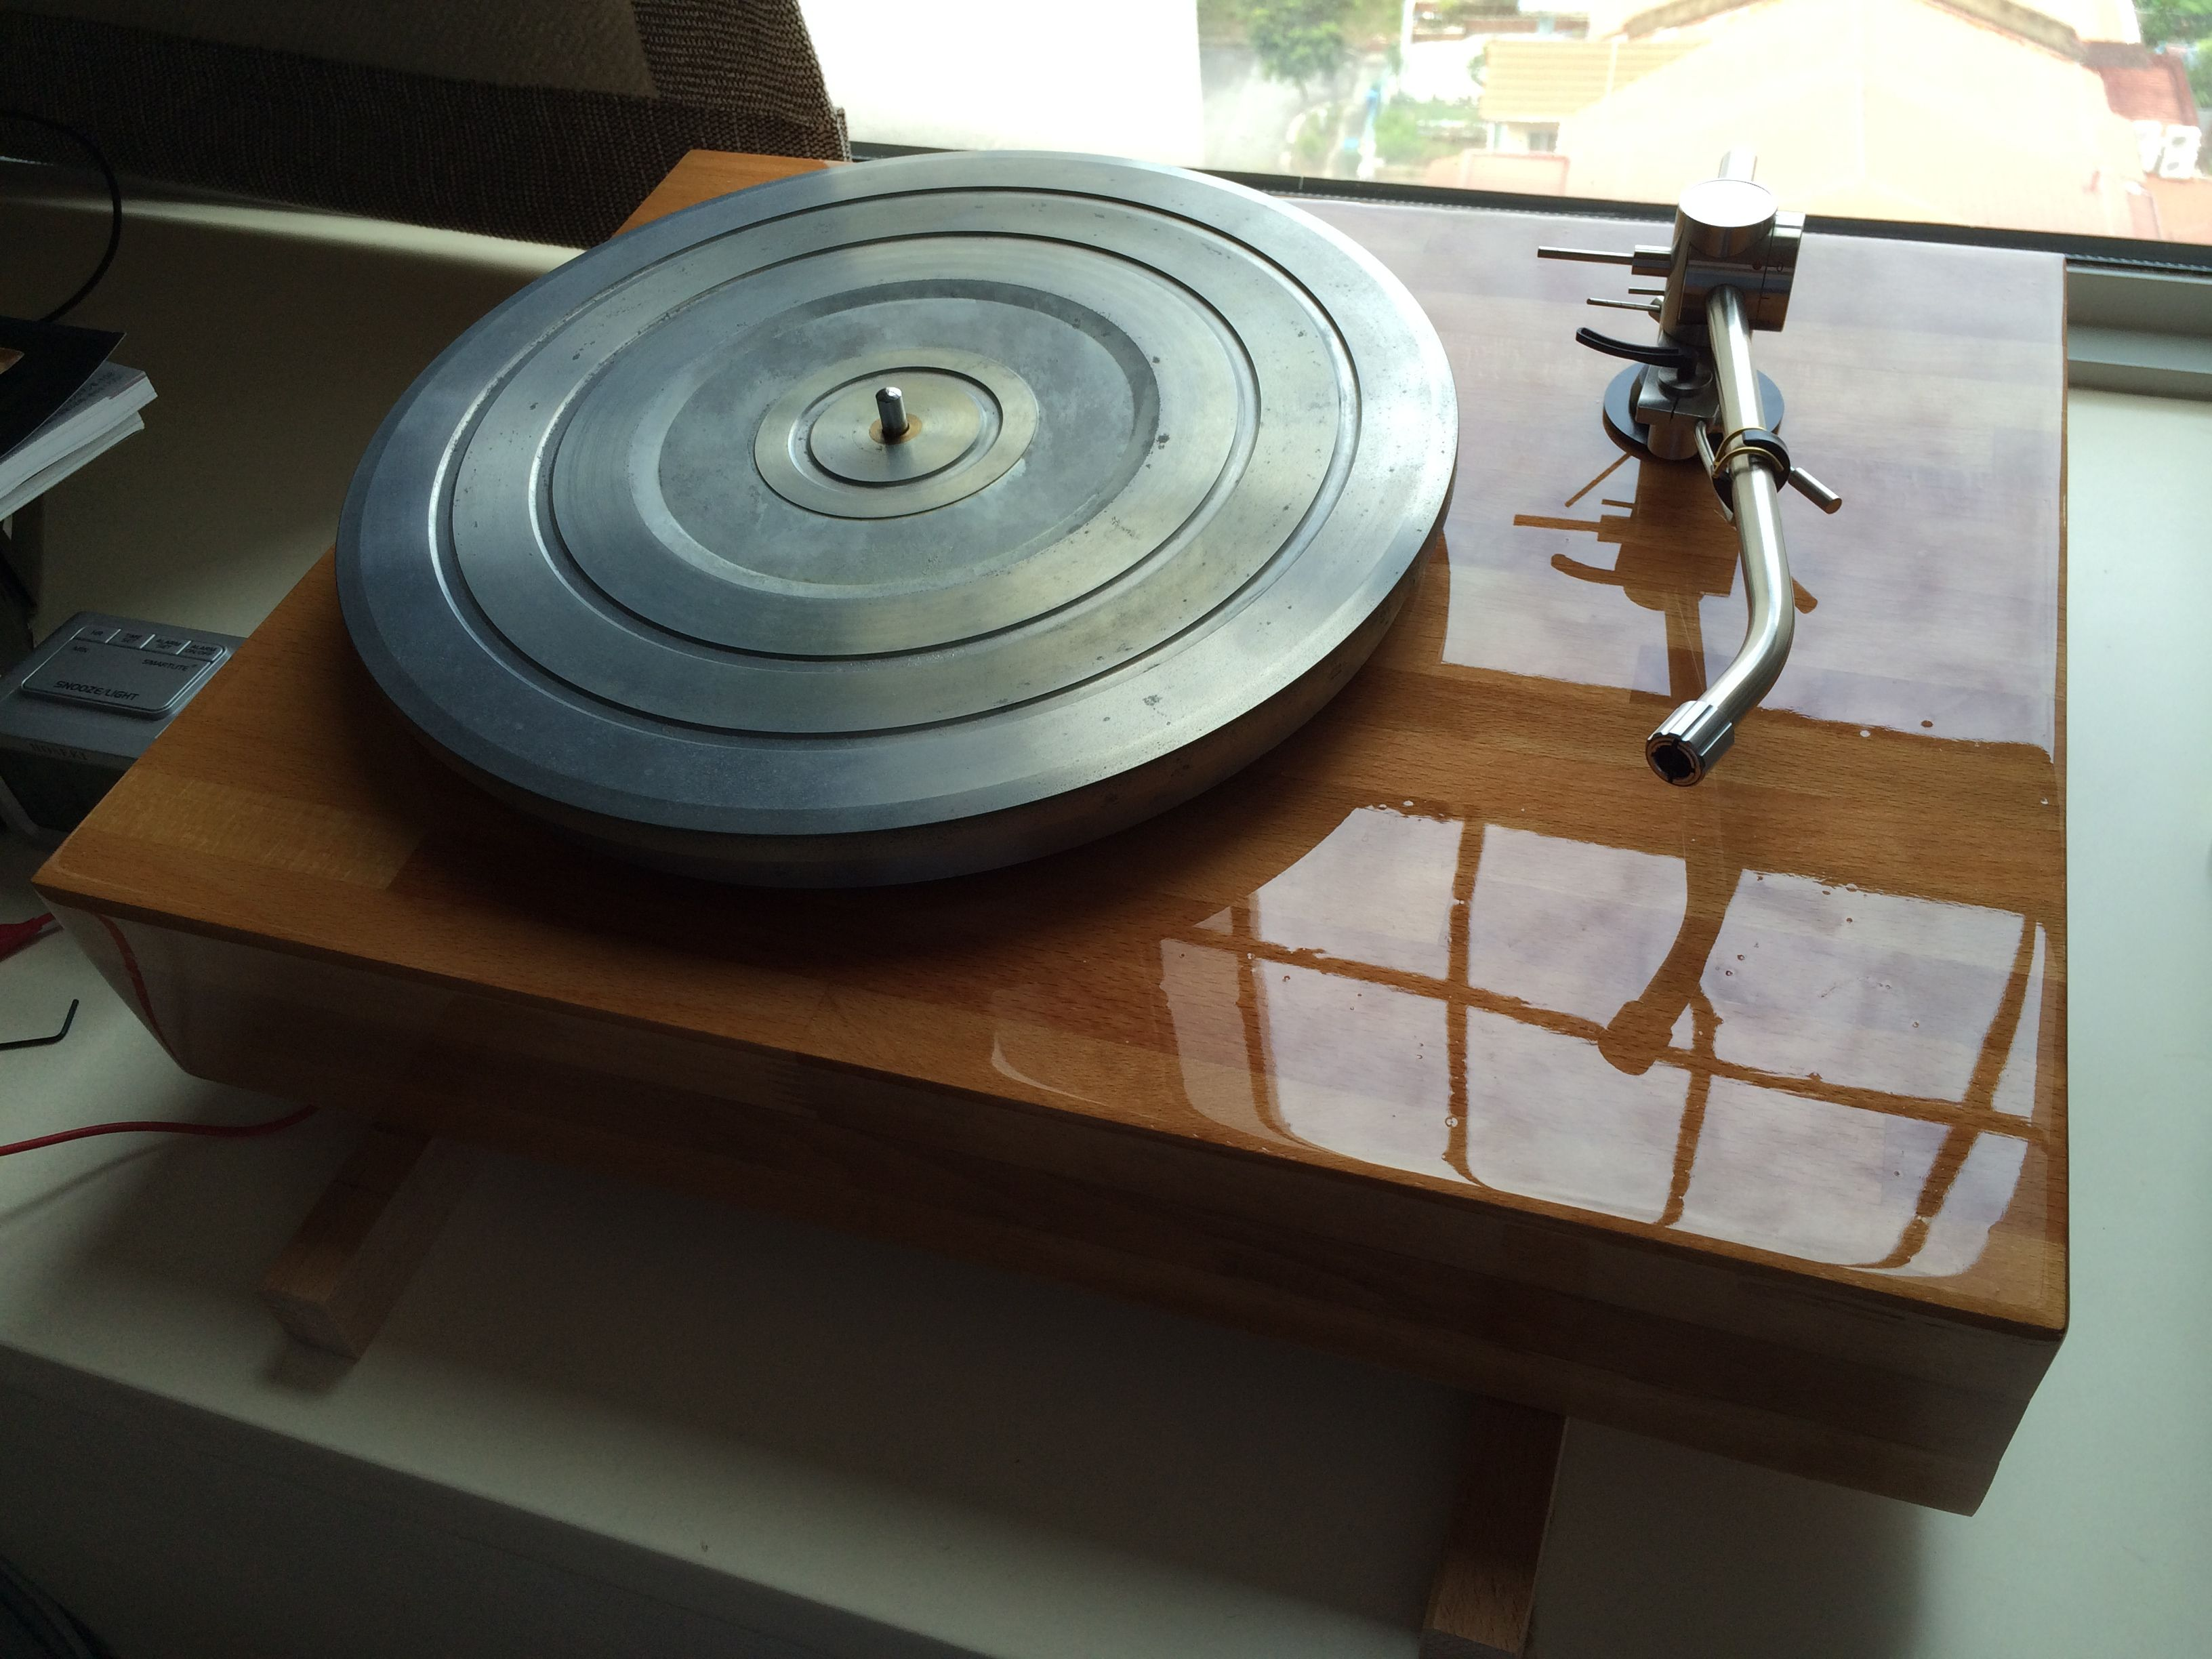 Ikea Lagan Turntable Plinth Ikea Hackers Great Ikea Hacks Pinterest Ikea Hackers